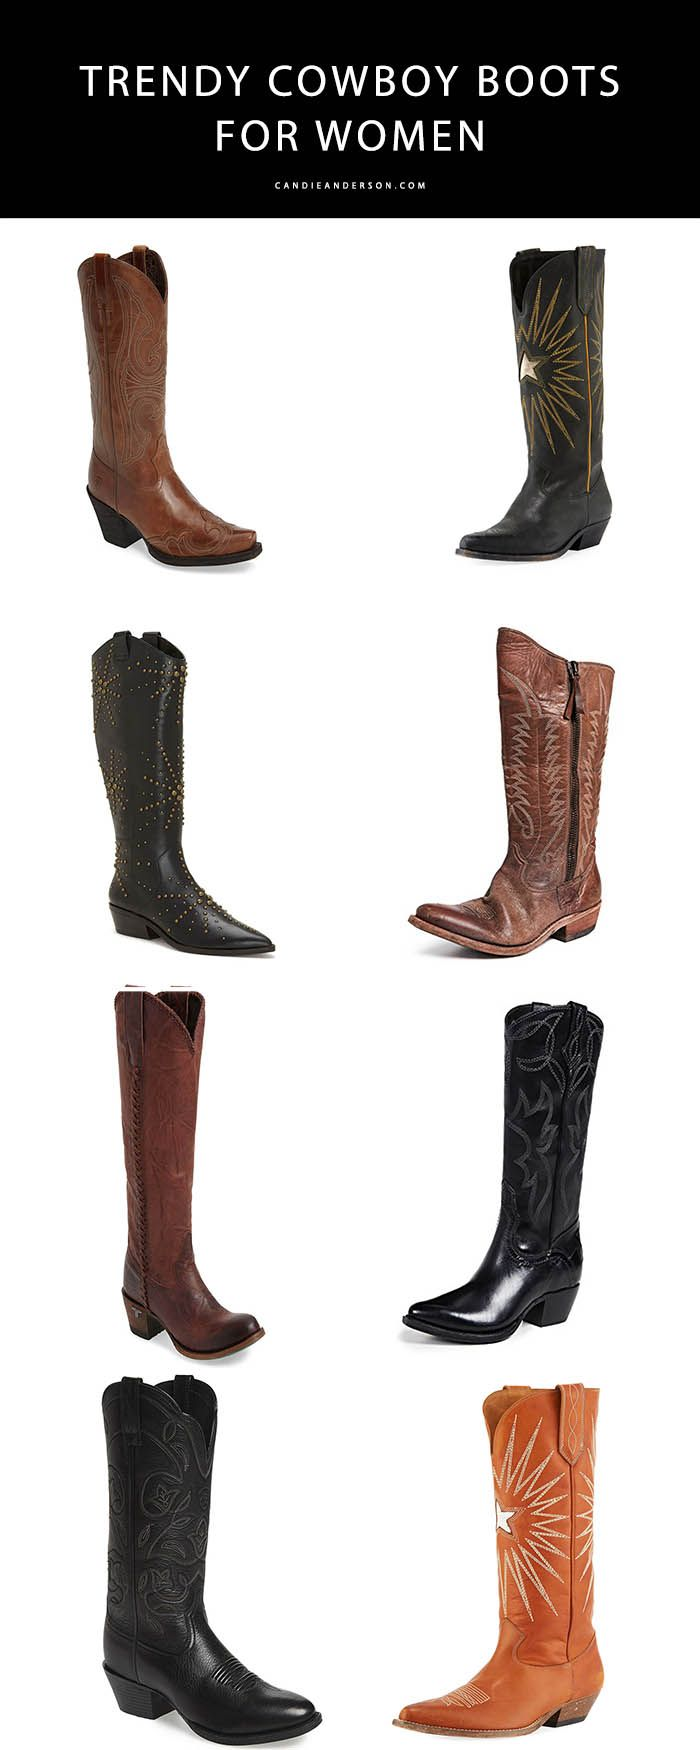 Boots, Womens boots, Cowboy boots